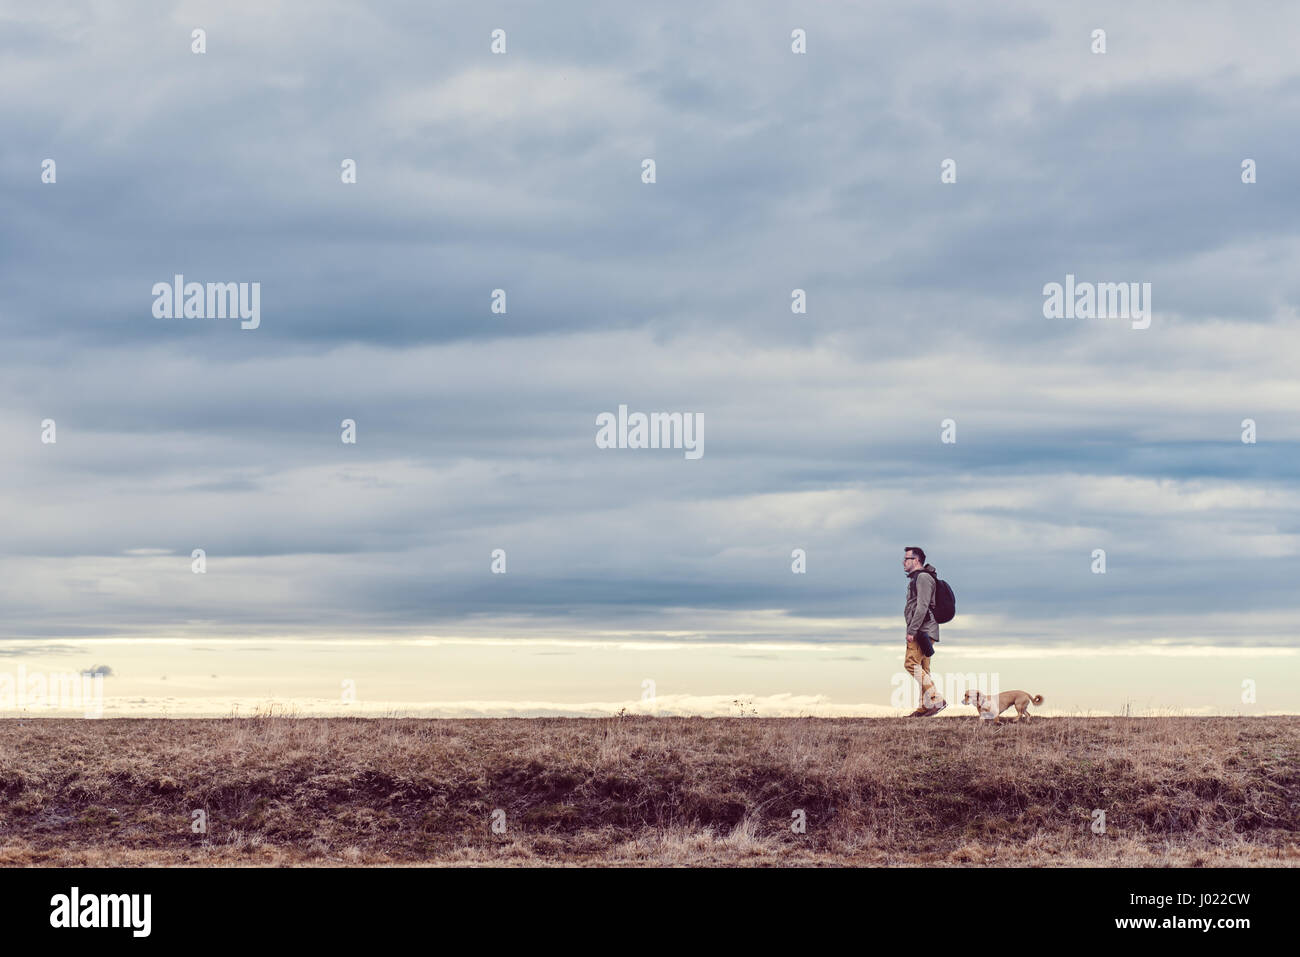 Hiker and dog walking in grassland on a cloudy day Stock Photo